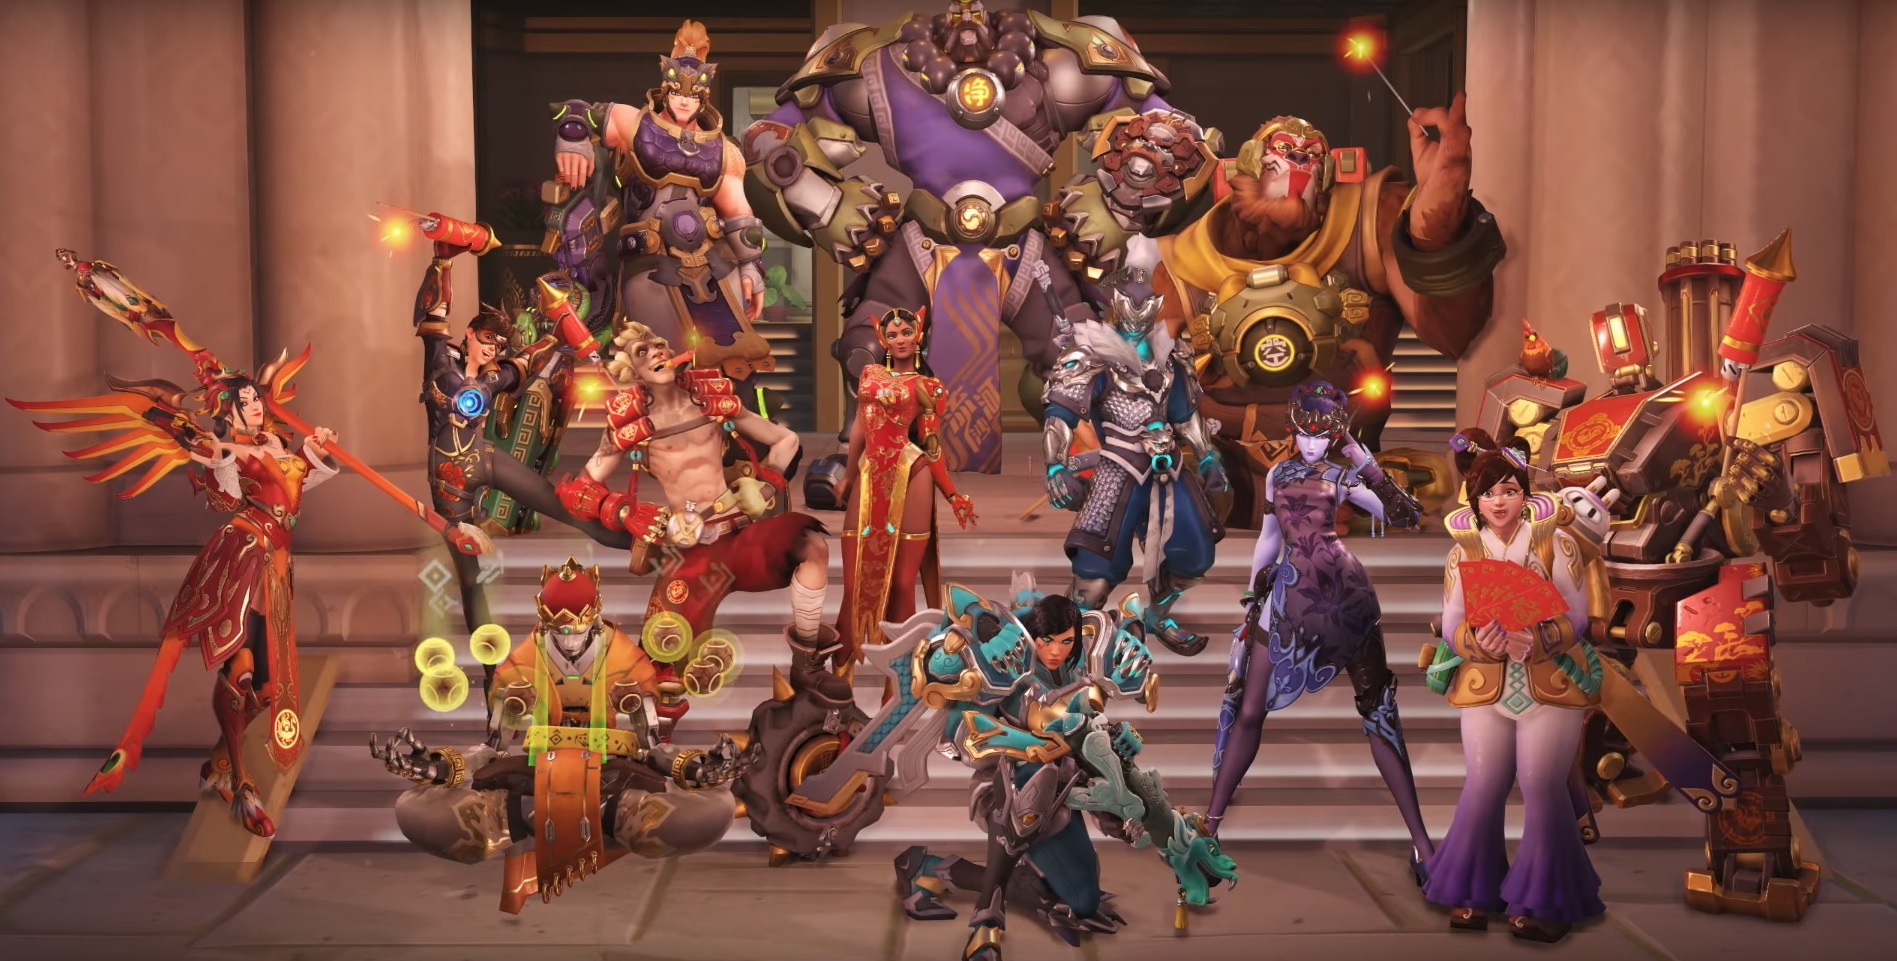 Overwatch Halloween 2020 Emotes And Highlight Intros Lunar New Year 2019: skins, highlight intros, and emotes | Esports